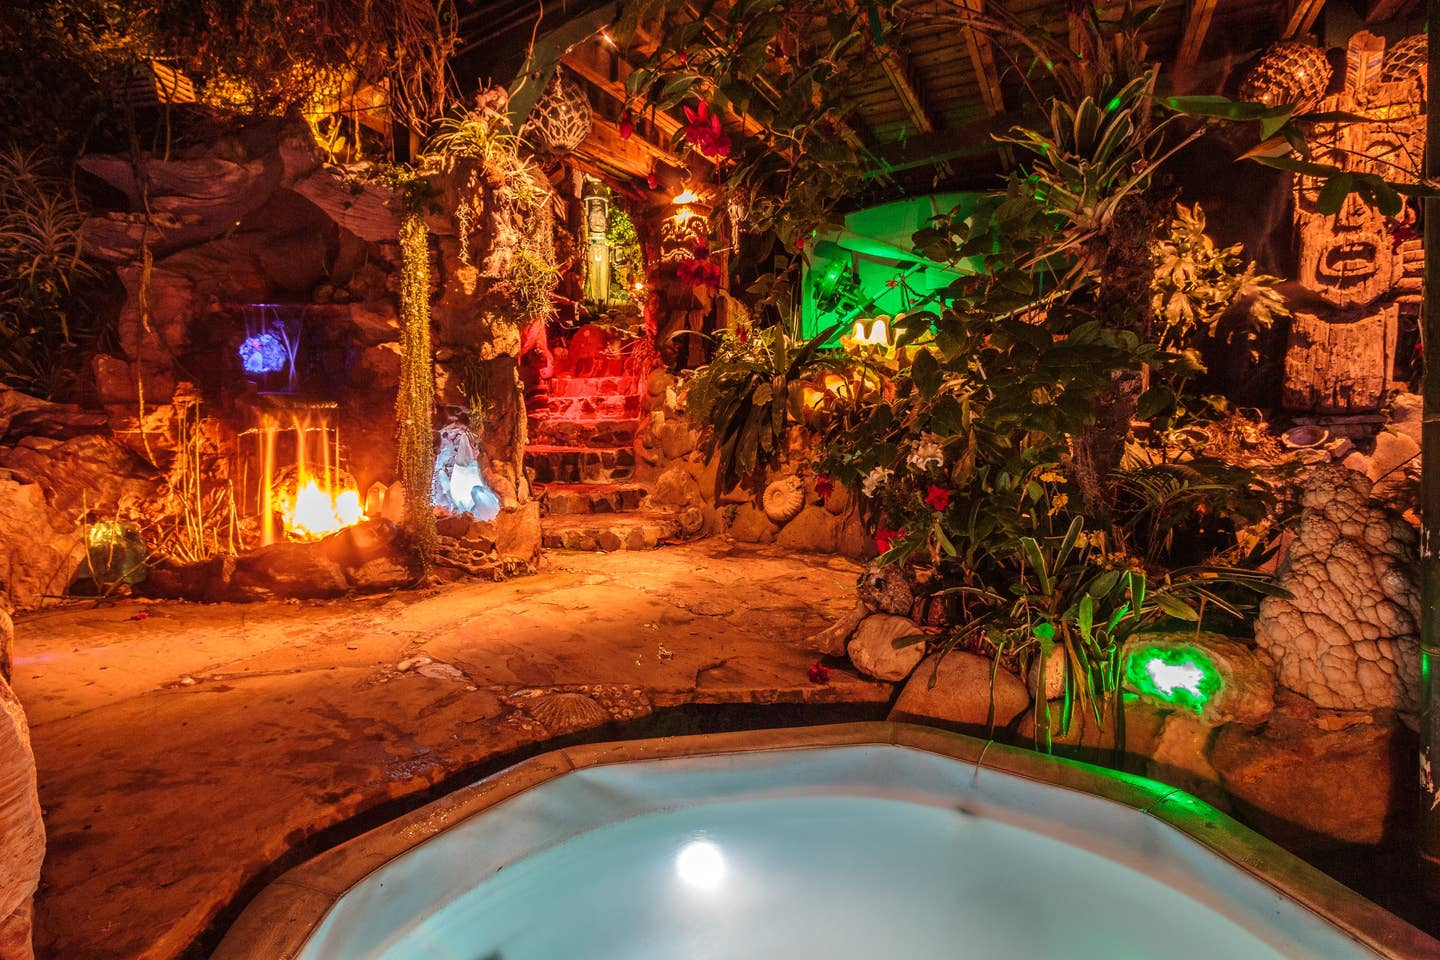 Most Unique USA Airbnbs pirate pool cave